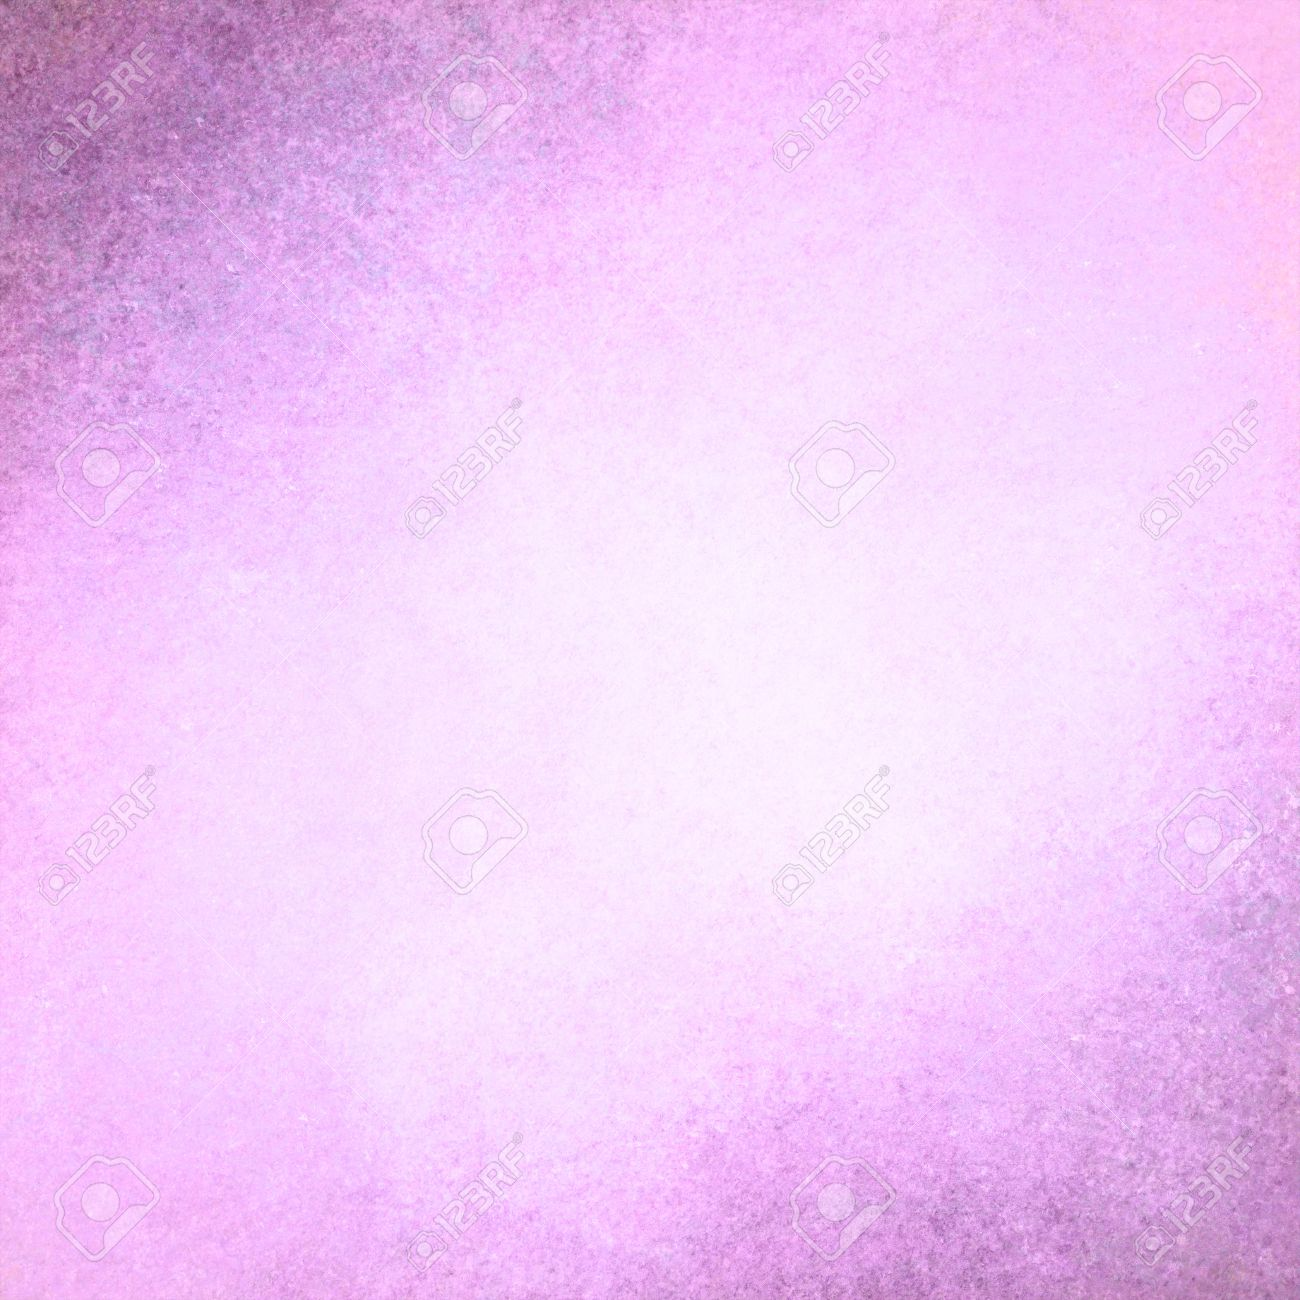 abstract purple pink background design border has dark pink and purple color edges of rough